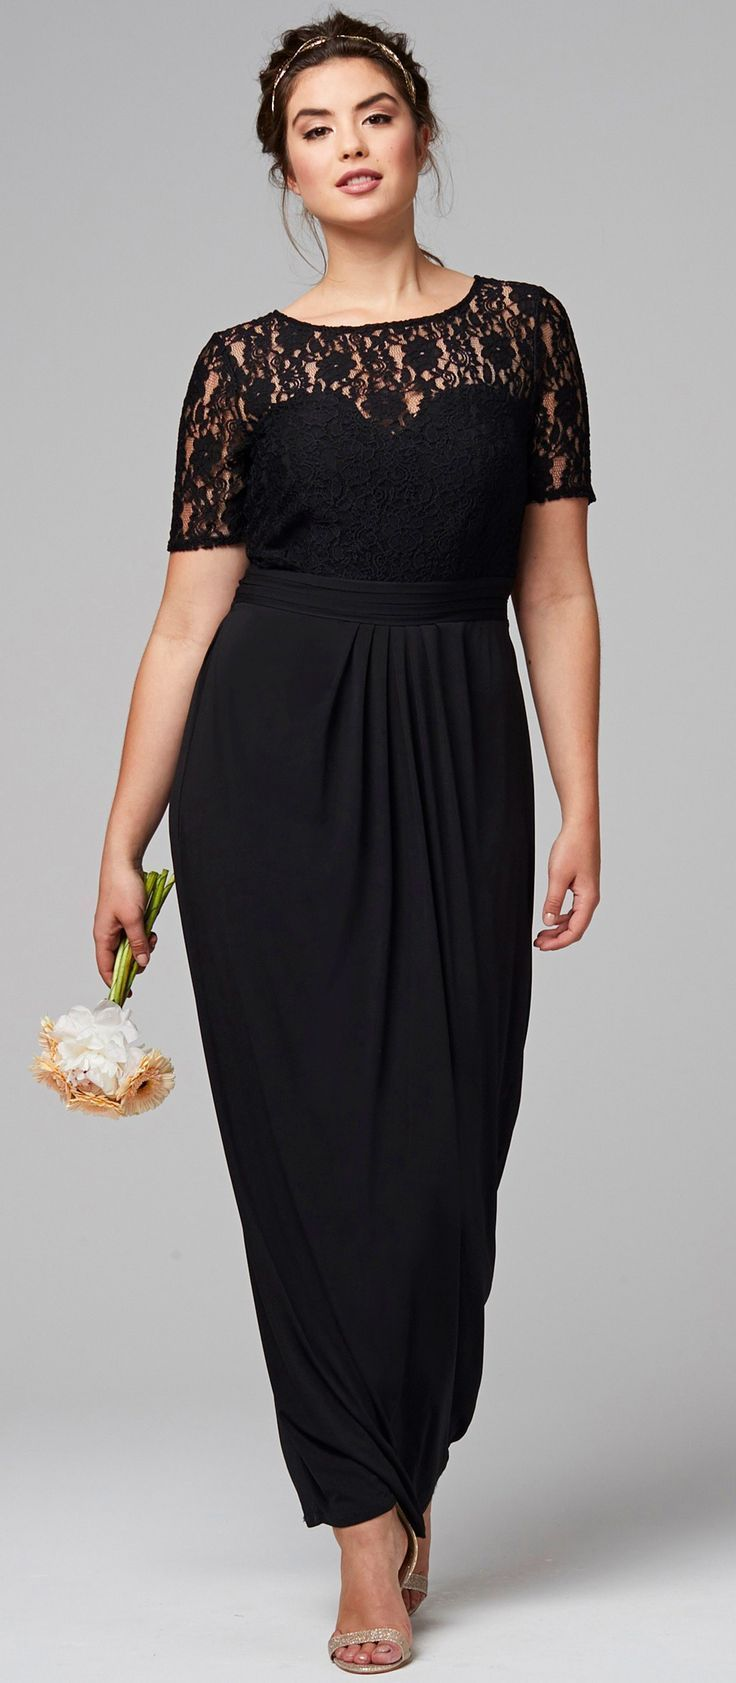 9692df5f75b 45 Plus Size Wedding Guest Dresses  with Sleeves  - Plus Size Cocktail  Dresses - alexawebb.com